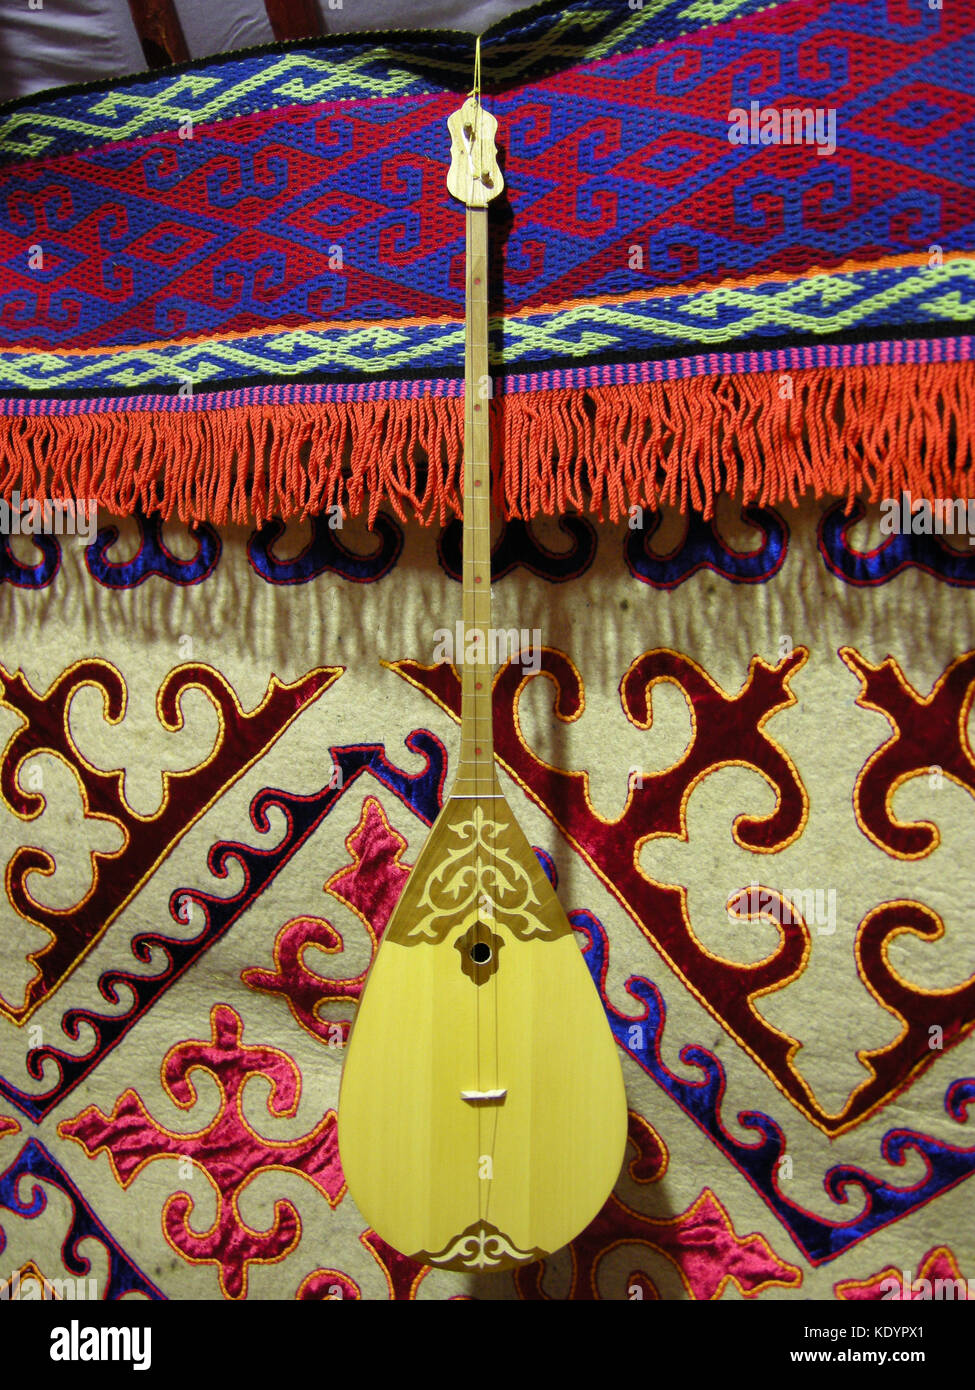 A two-stringed guitar like instrument on display at an exhibit in the Kazakhstan Embassy, Abu Dhabi, UAE - Stock Image